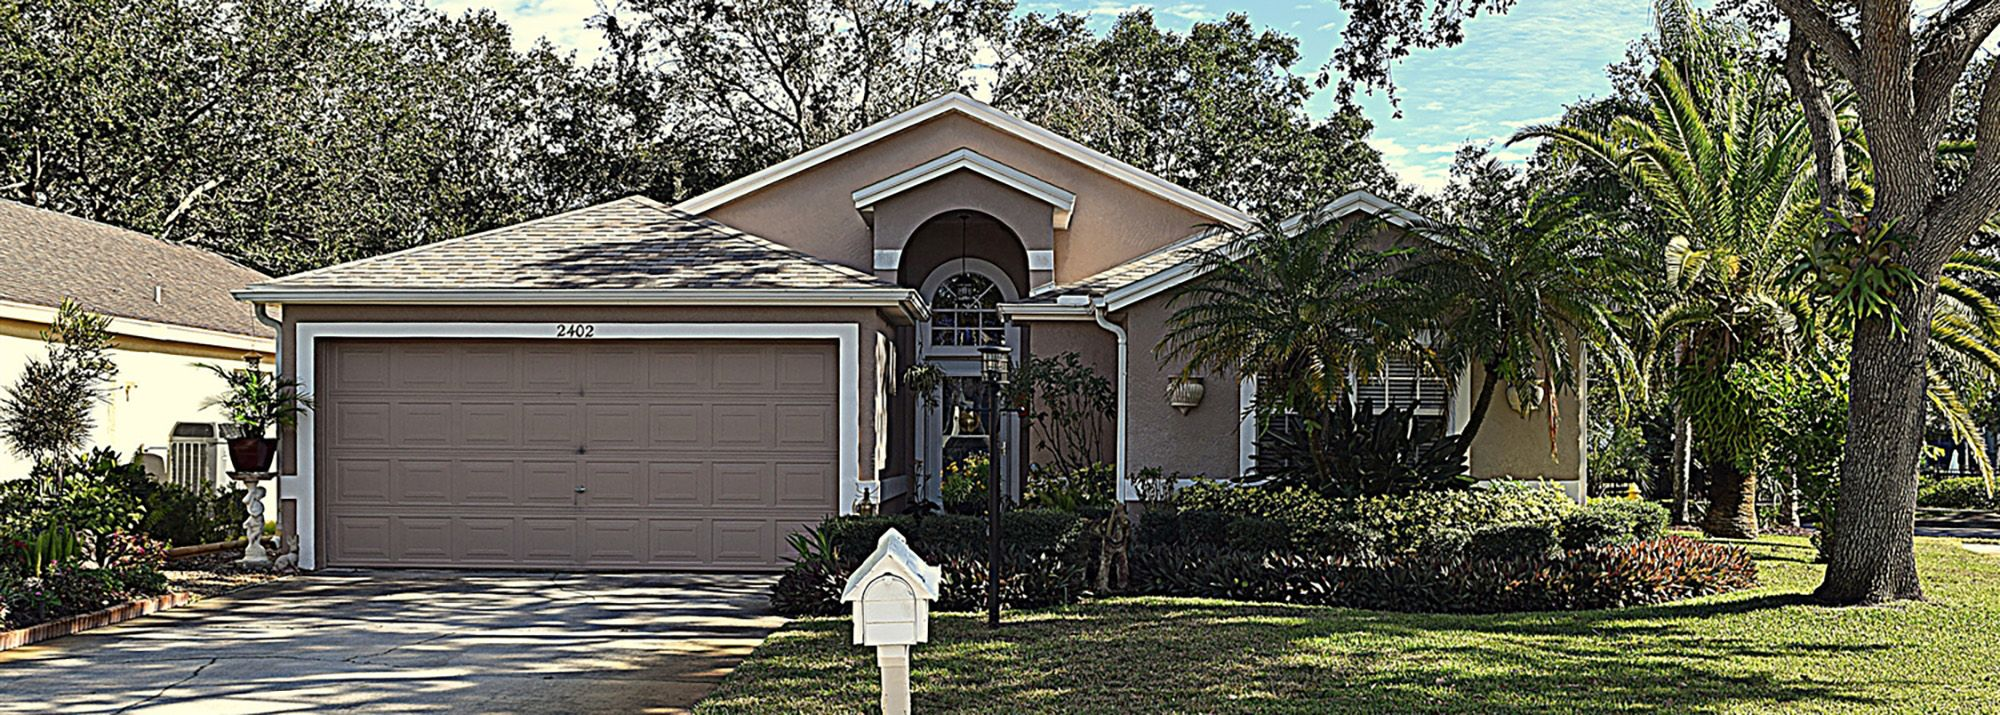 Home for sale in Melbourne, Florida http//2402stjohns